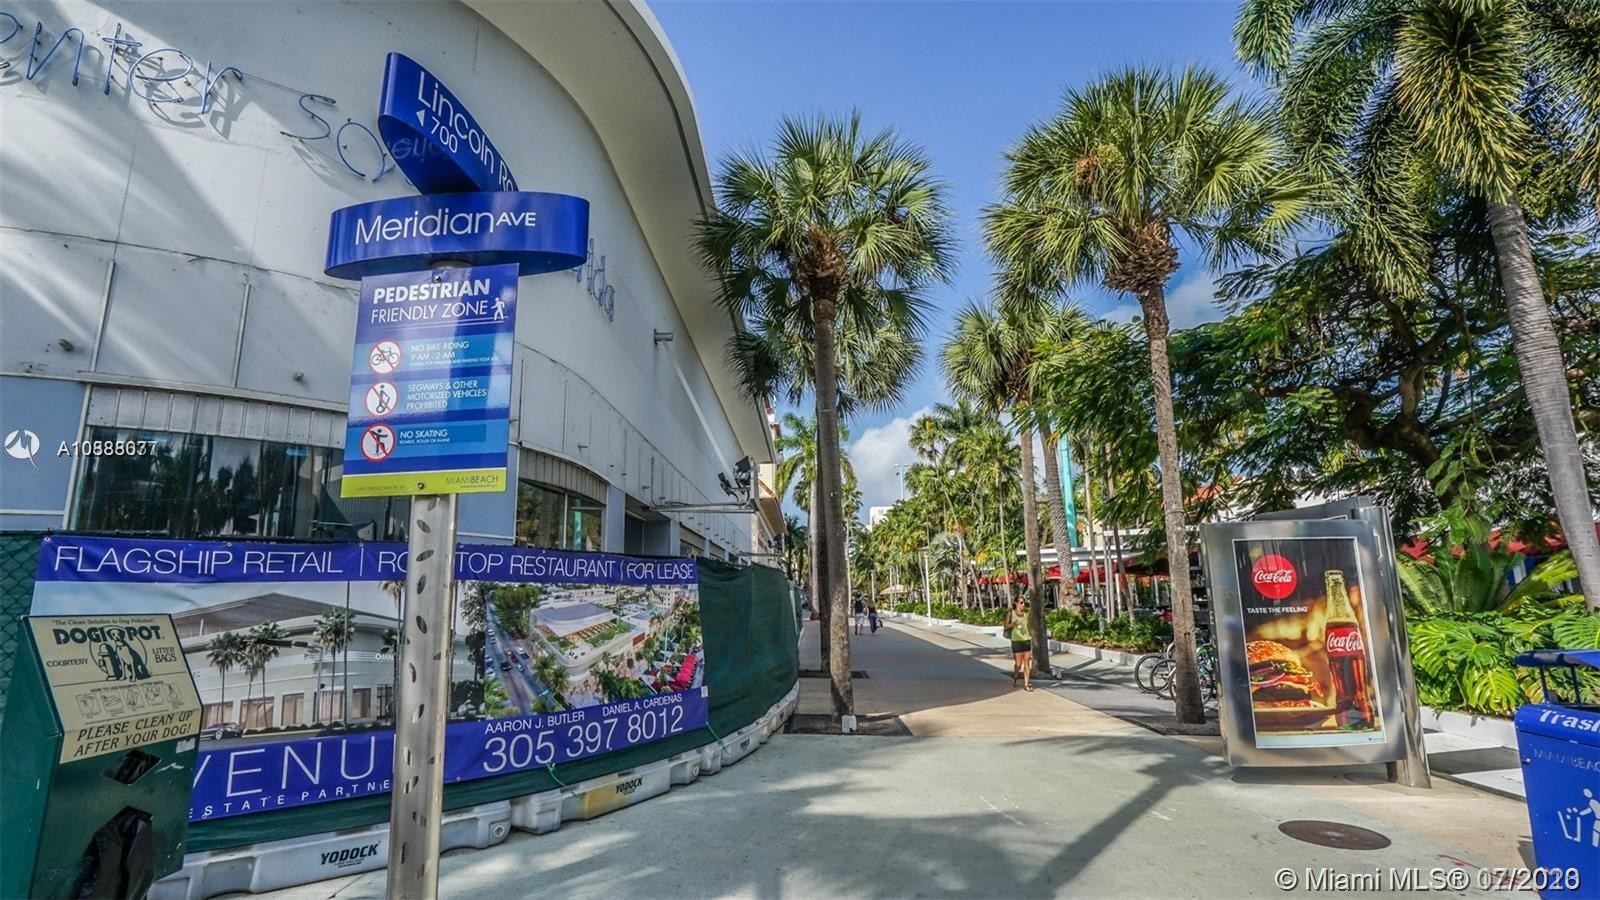 1619  Meridian Ave #10 For Sale A10888077, FL